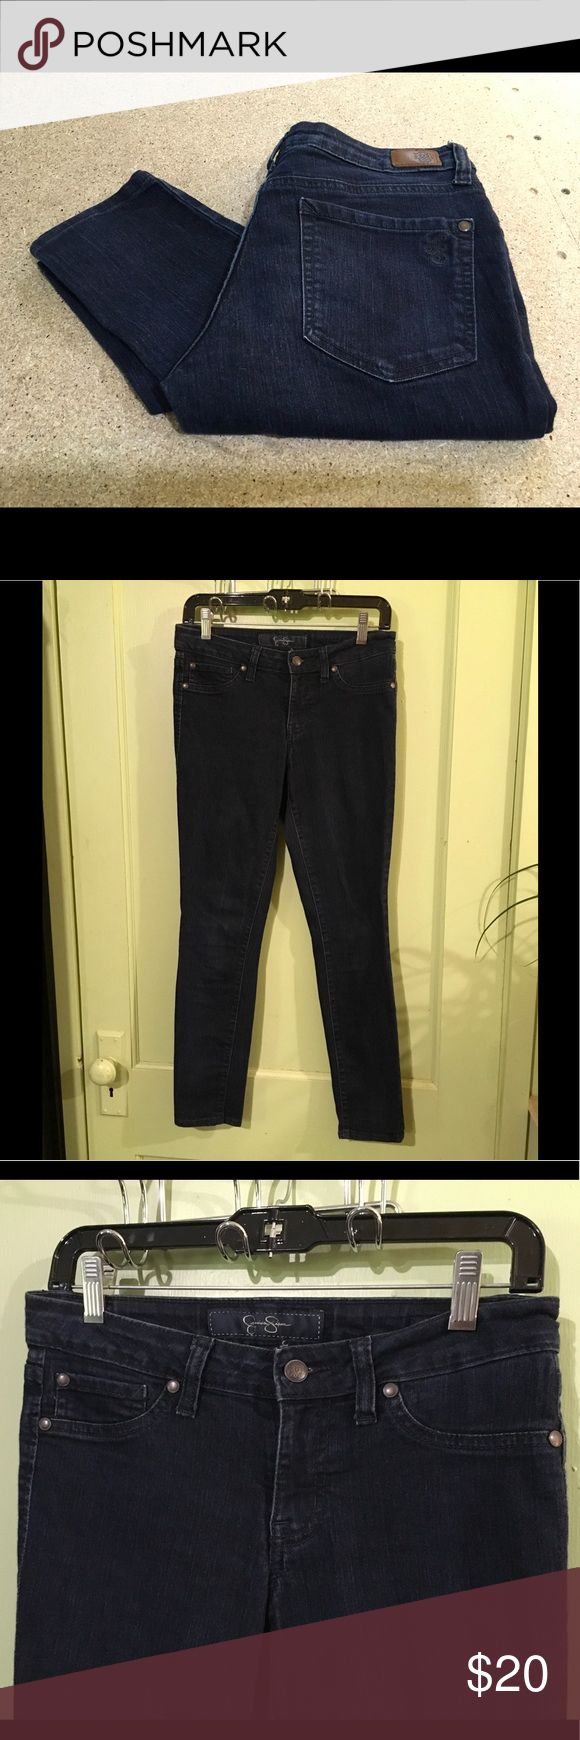 "JESSICA SIMPSON - Kiss Me Dark Wash Jeggings Jessica Simpson pants Size: 28 Descriptions: ""Kiss Me Jeggings."" Dark wash skinny crop jeans. Belt loops. Faux pockets in frontOpen pockets on front and back. Stretch. 82% cotton/17% polyester/1% spandex. Condition: Excellent used condition. Slightly wrinkled from storage. Dimensions: 28"" inseam. 28"" waist. 36"" from waistband to leg hem. 5.5"" opening at leg hem. 8"" rise. 33"" hips.  Inventory Reference: #P336 Jessica Simpson Jeans Skinny"